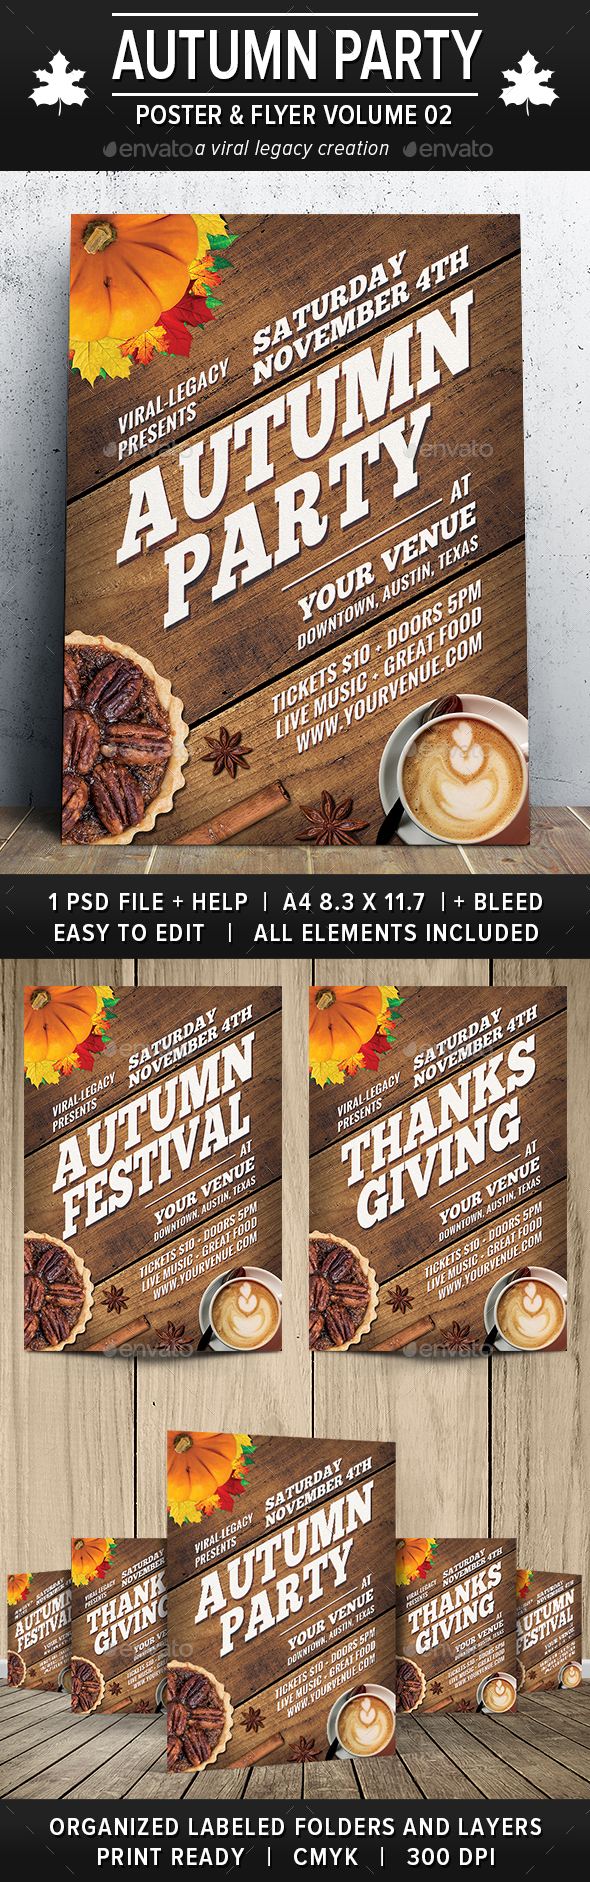 Autumn Party Poster / Flyer V02 - Flyers Print Templates